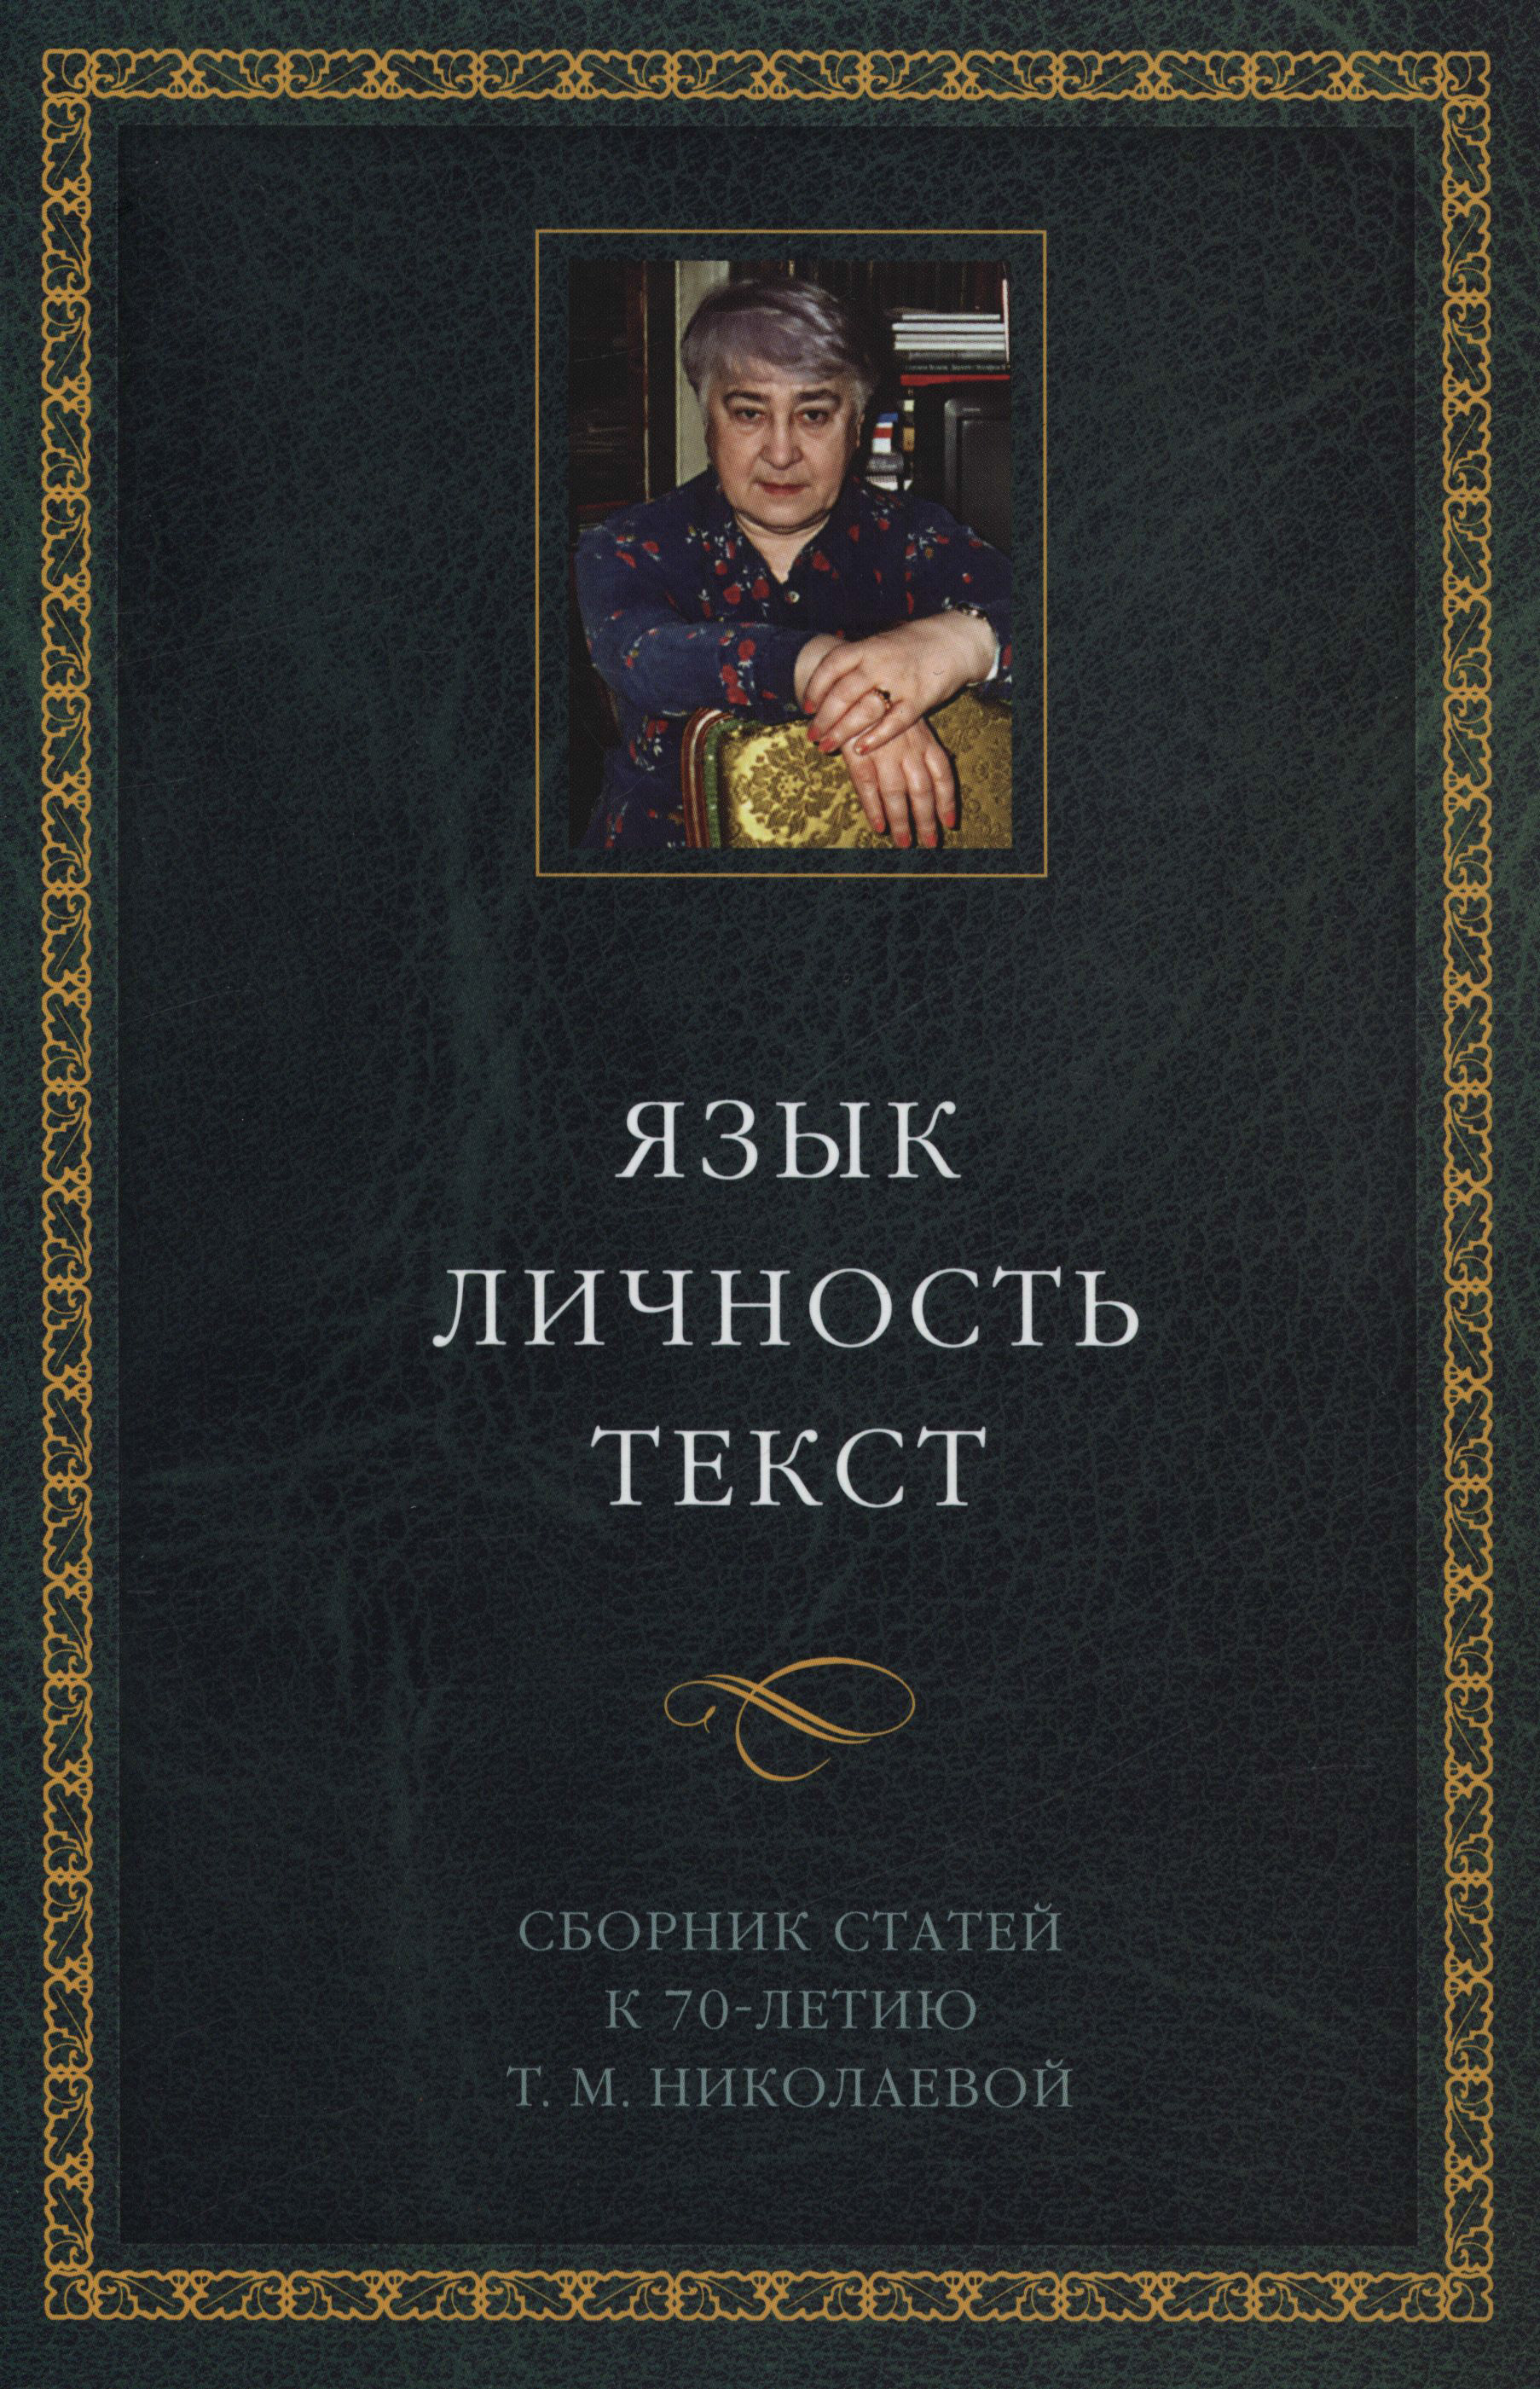 Сборник статей Язык. Личность. Текст. Сборник статей в честь Т. М. Николаевой special leather car seat covers for toyota rav4 prado highlander corolla camry prius reiz crown yaris car accessories styling